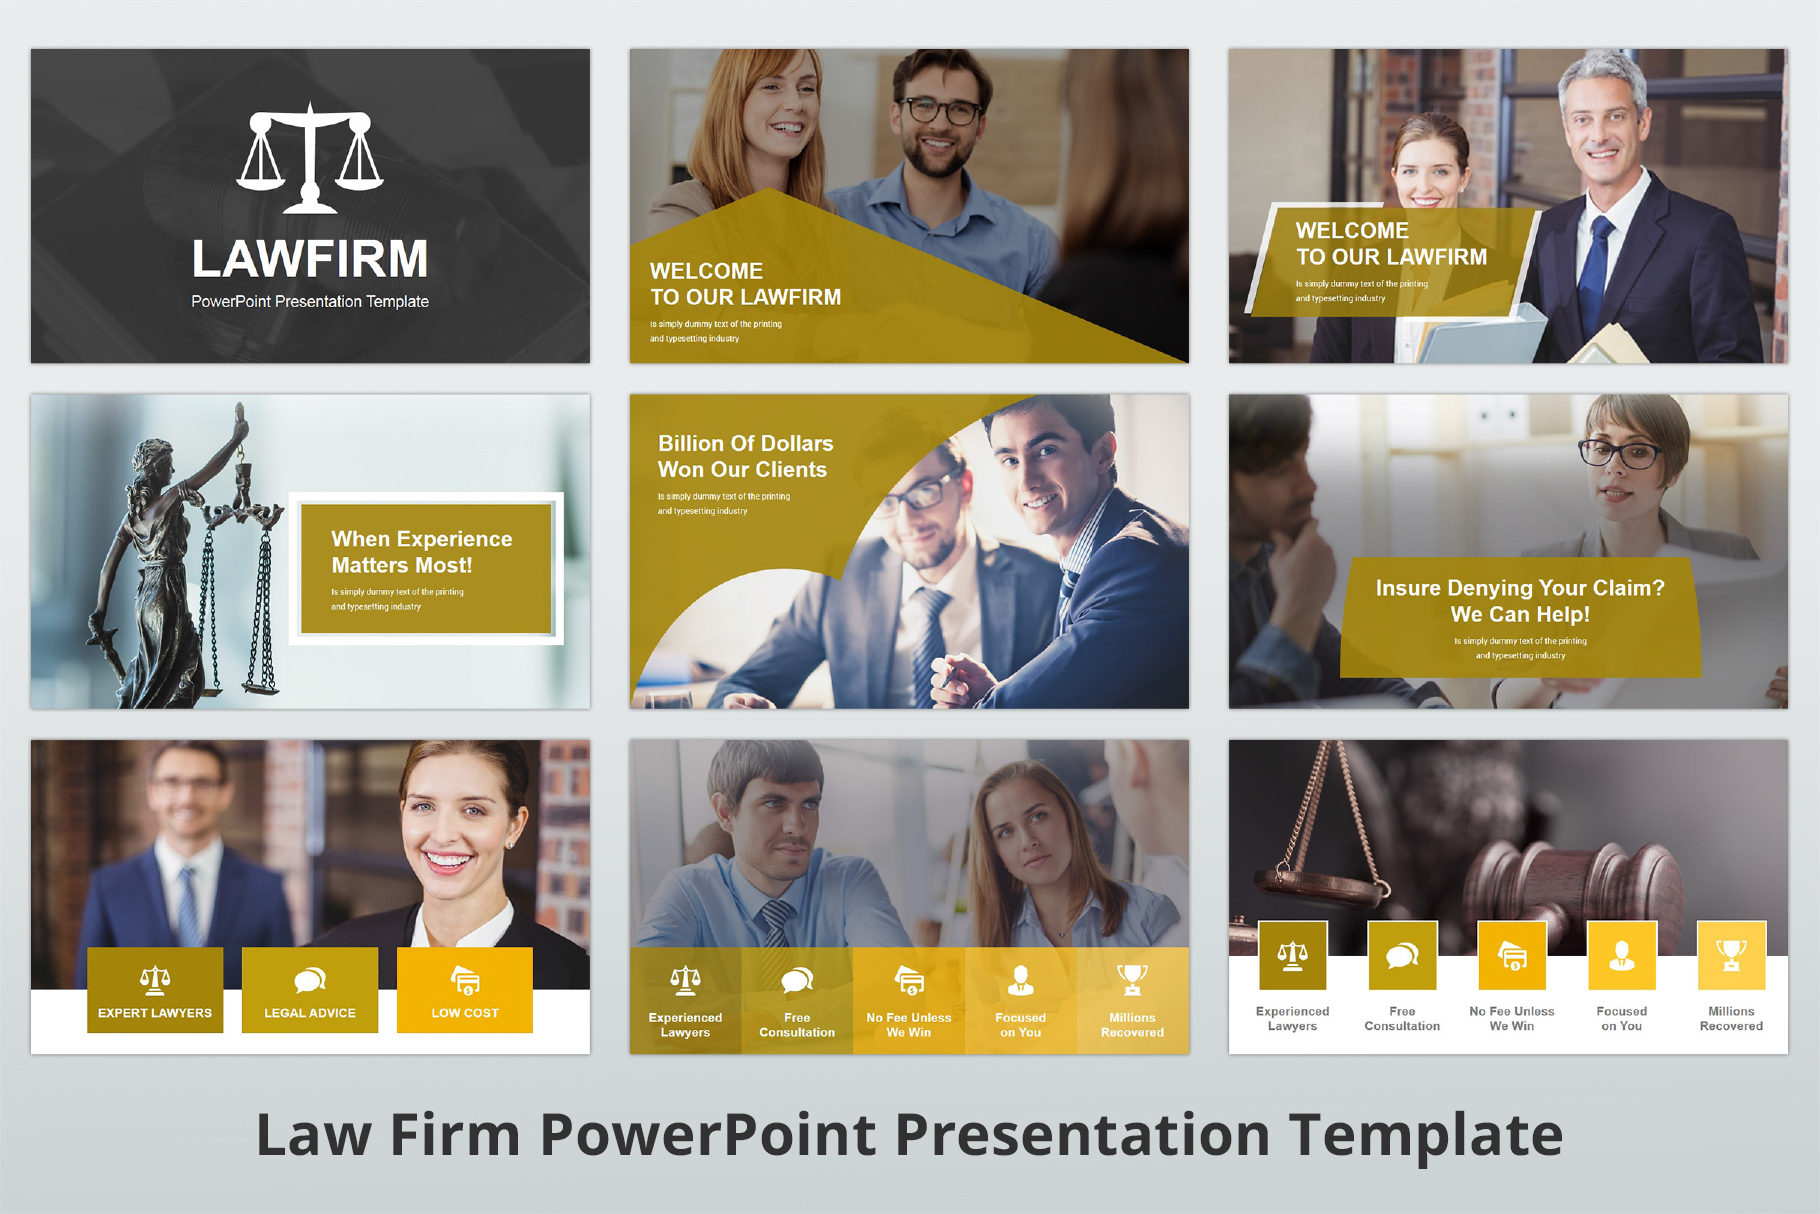 Law Firm PowerPoint Presentation Template example image 4